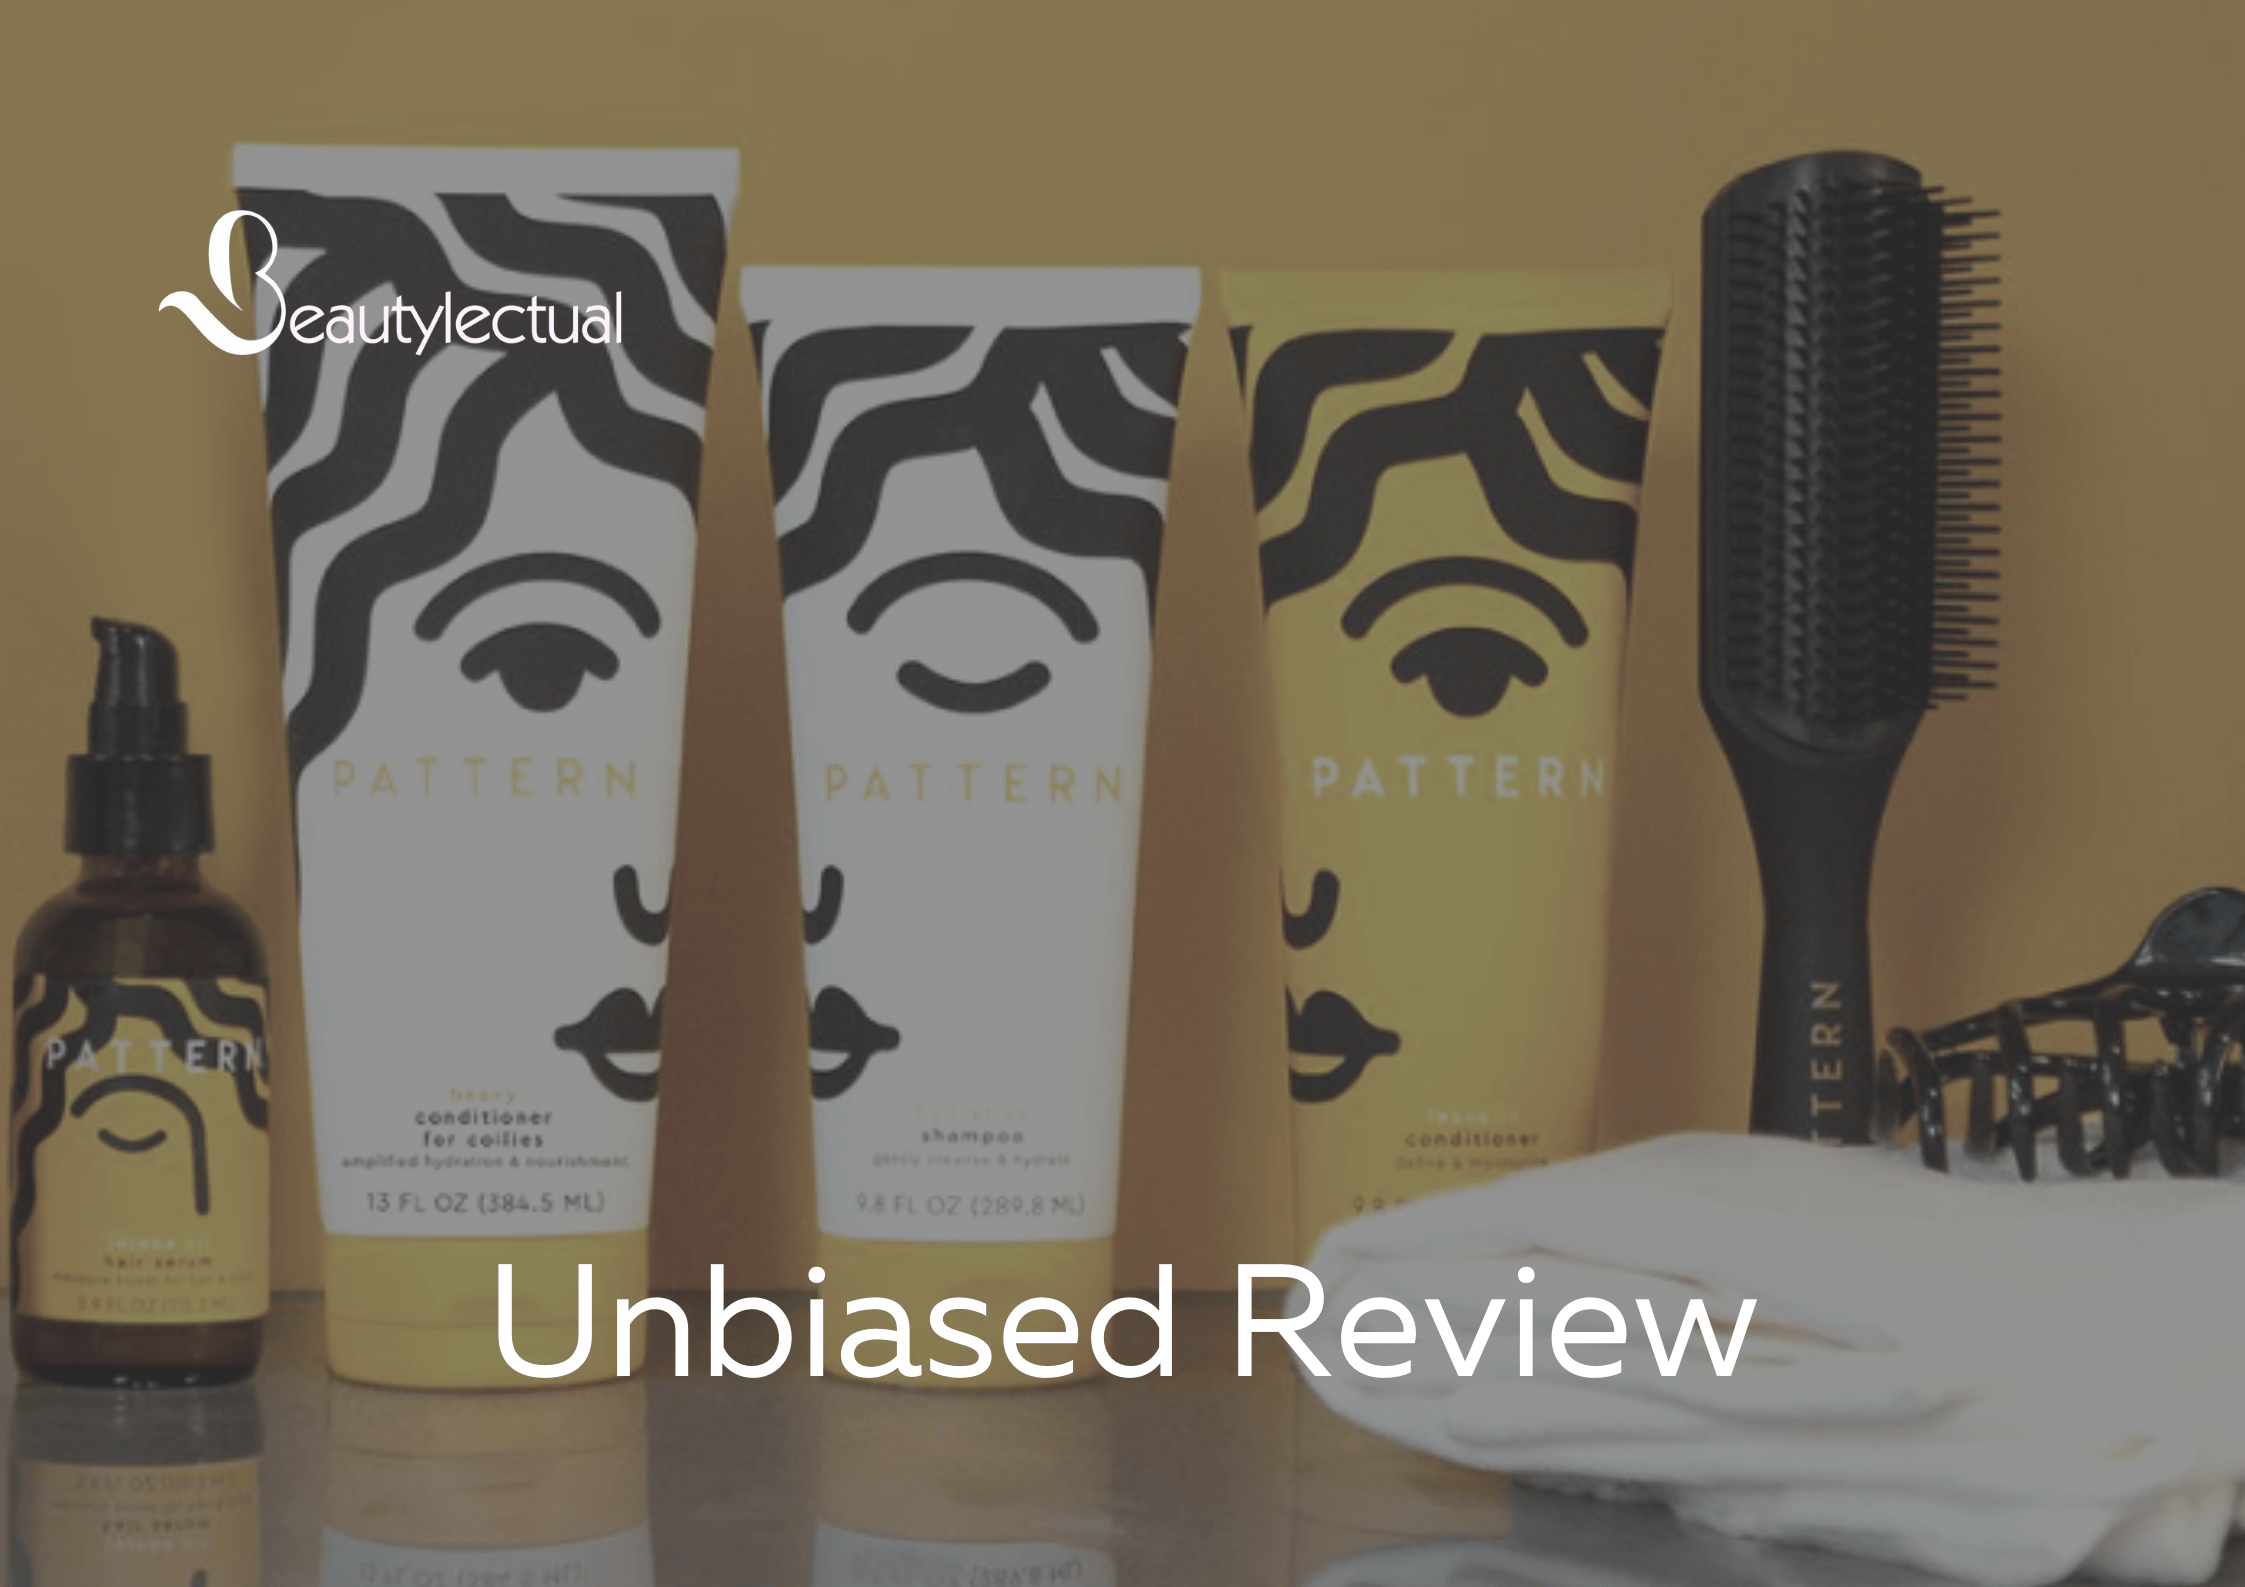 Pattern Hair Care Reviews